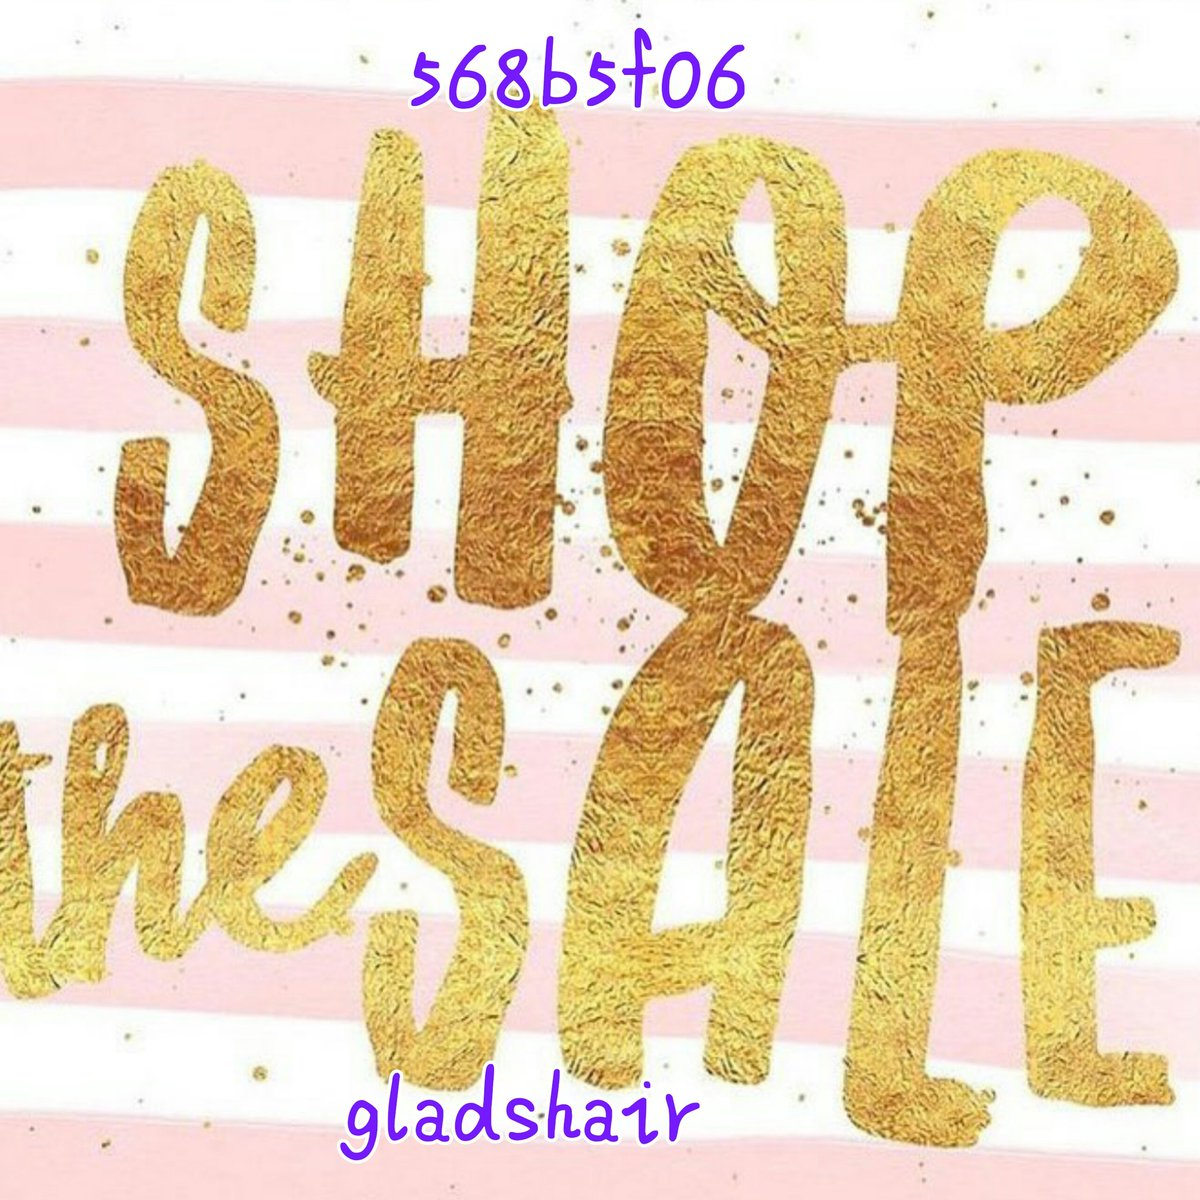 Hurry up guys we are selling out fast.....sales sales sales!!! Pls RT and view my previous tweets https://t.co/QiaY7PPFmj